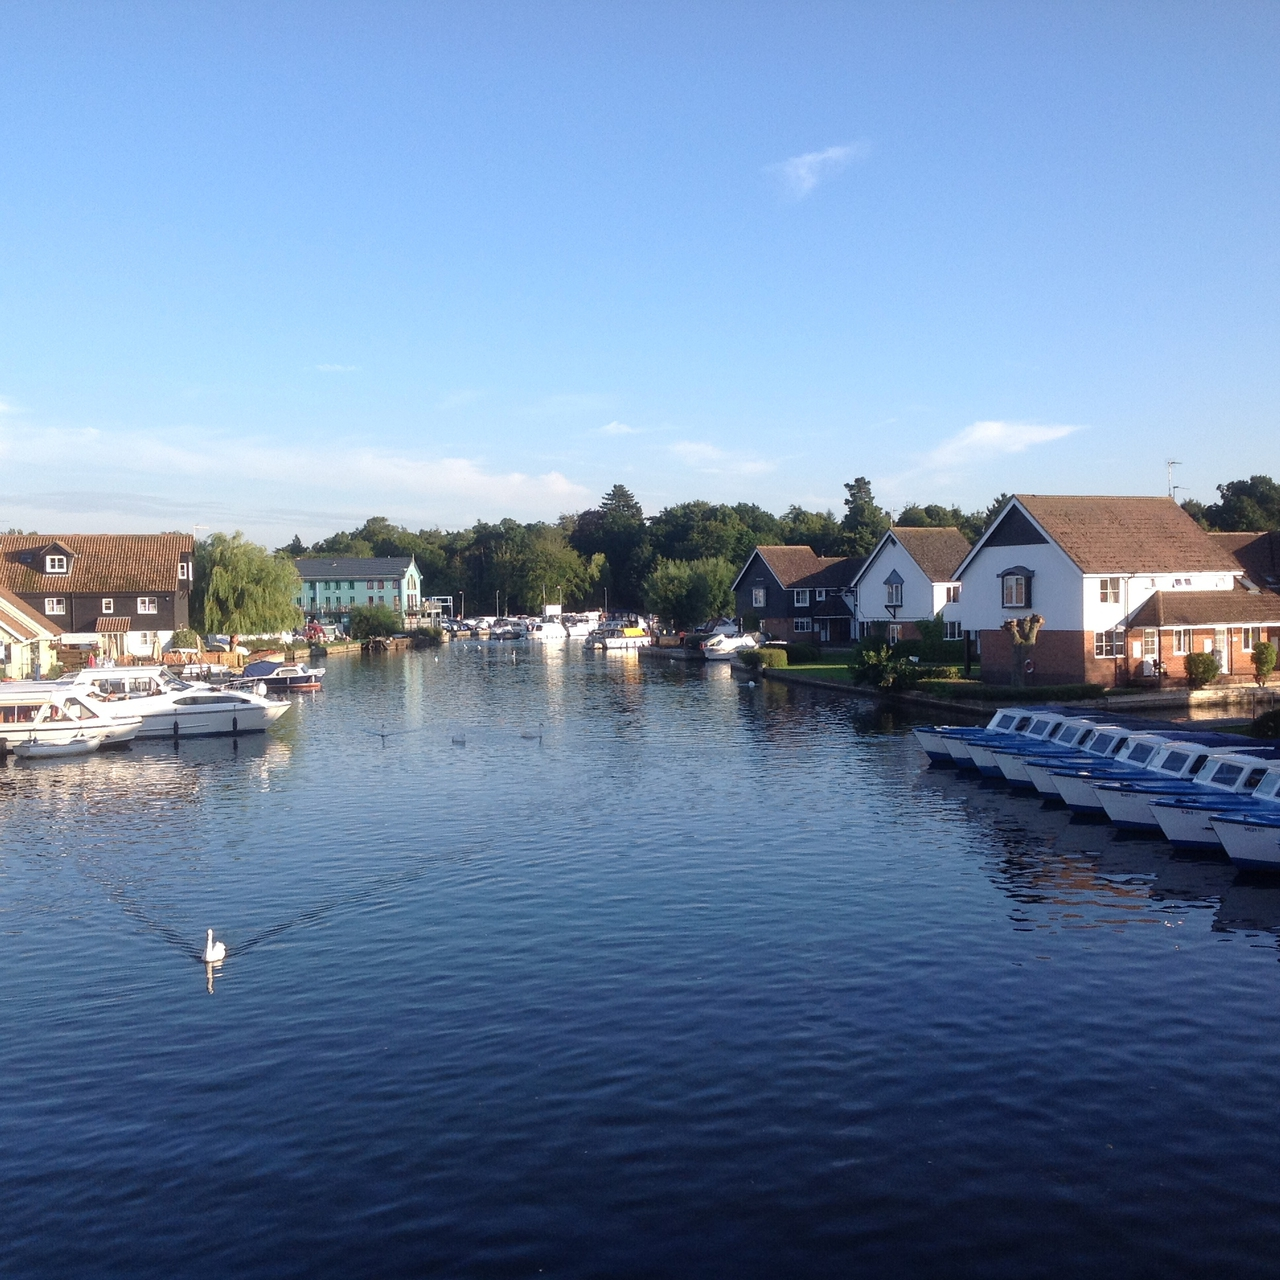 The cottage seen from Wroxham Bridge - first right after the day boats.